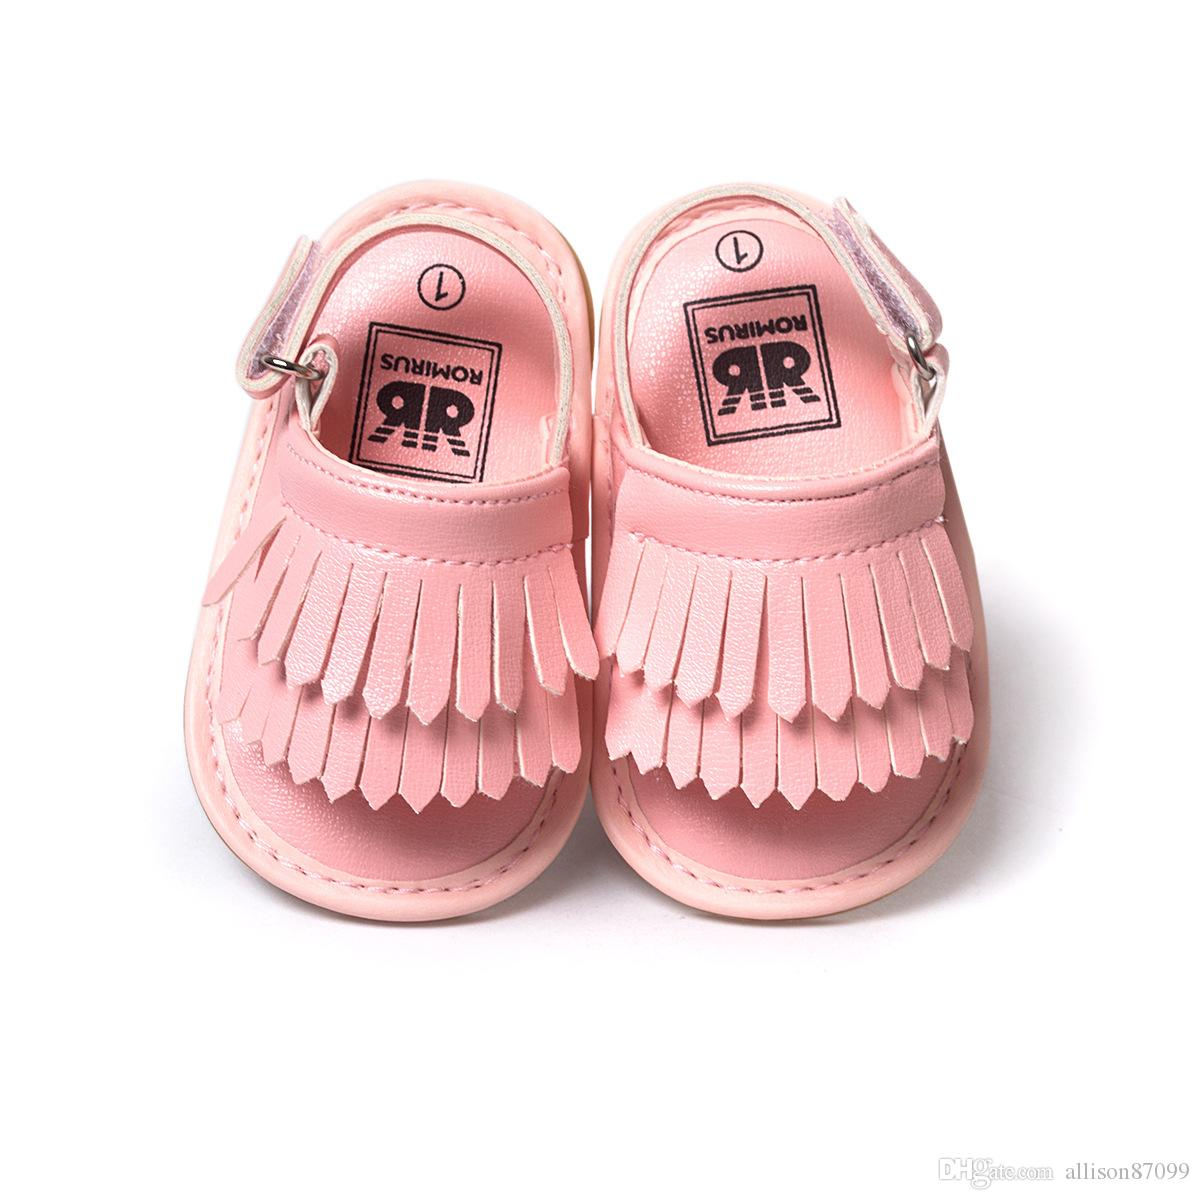 2017 New Baby sandals shoes Gladiator Tassels Summer soft sole Gold Hotsale nubuck leather Baby girls shoes 0-6 6-12 12-18 months Free DHL